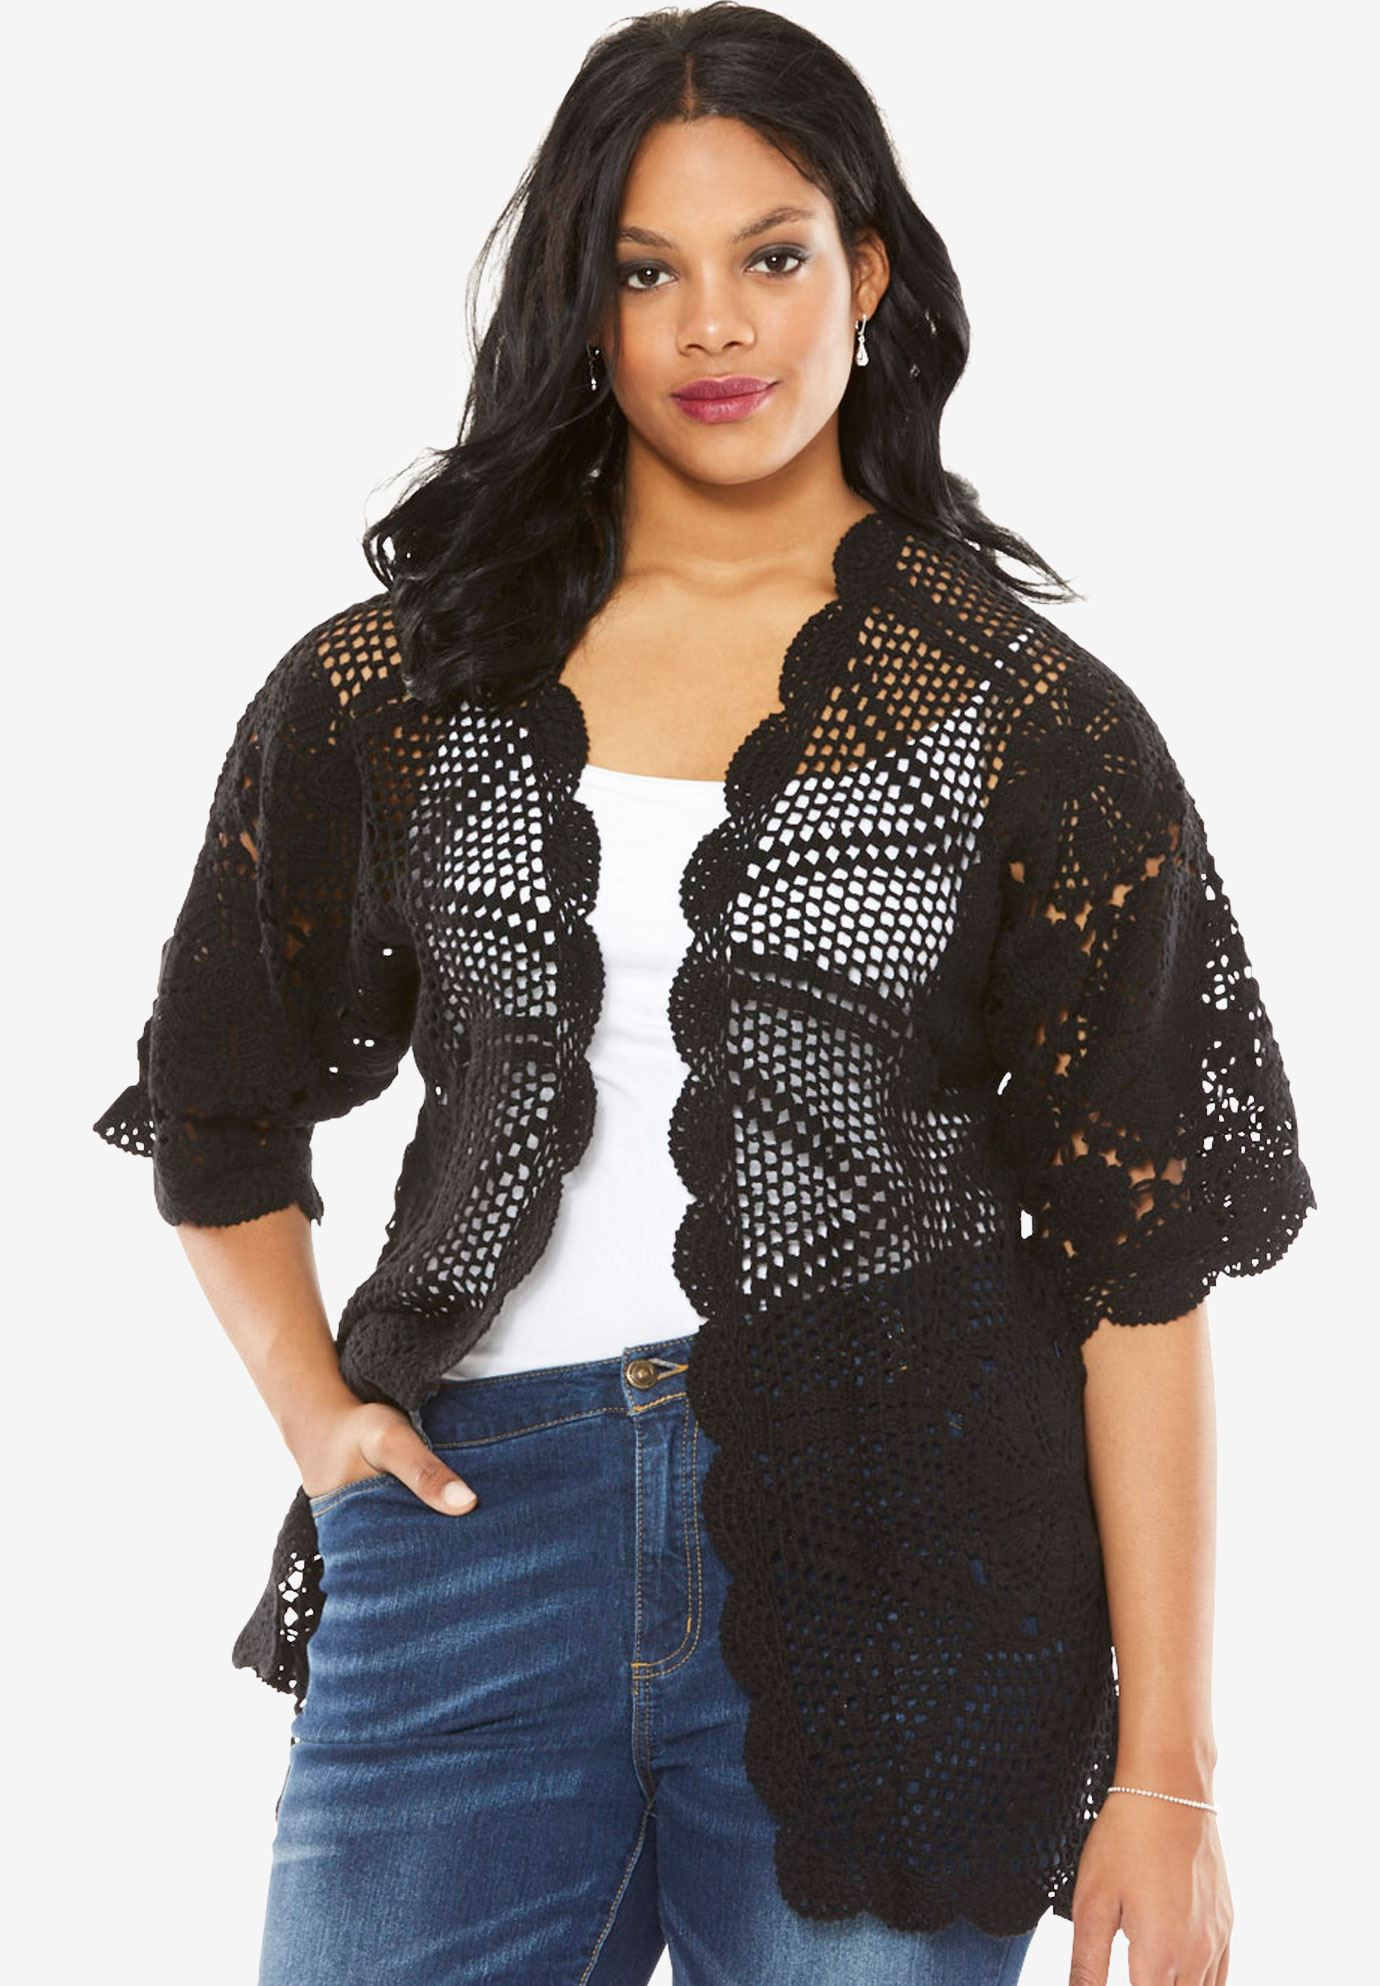 Awesome Hand Crocheted Lace Cardigan Plus Size Cardigans Plus Size Crochet Cardigan Of Delightful 41 Models Plus Size Crochet Cardigan